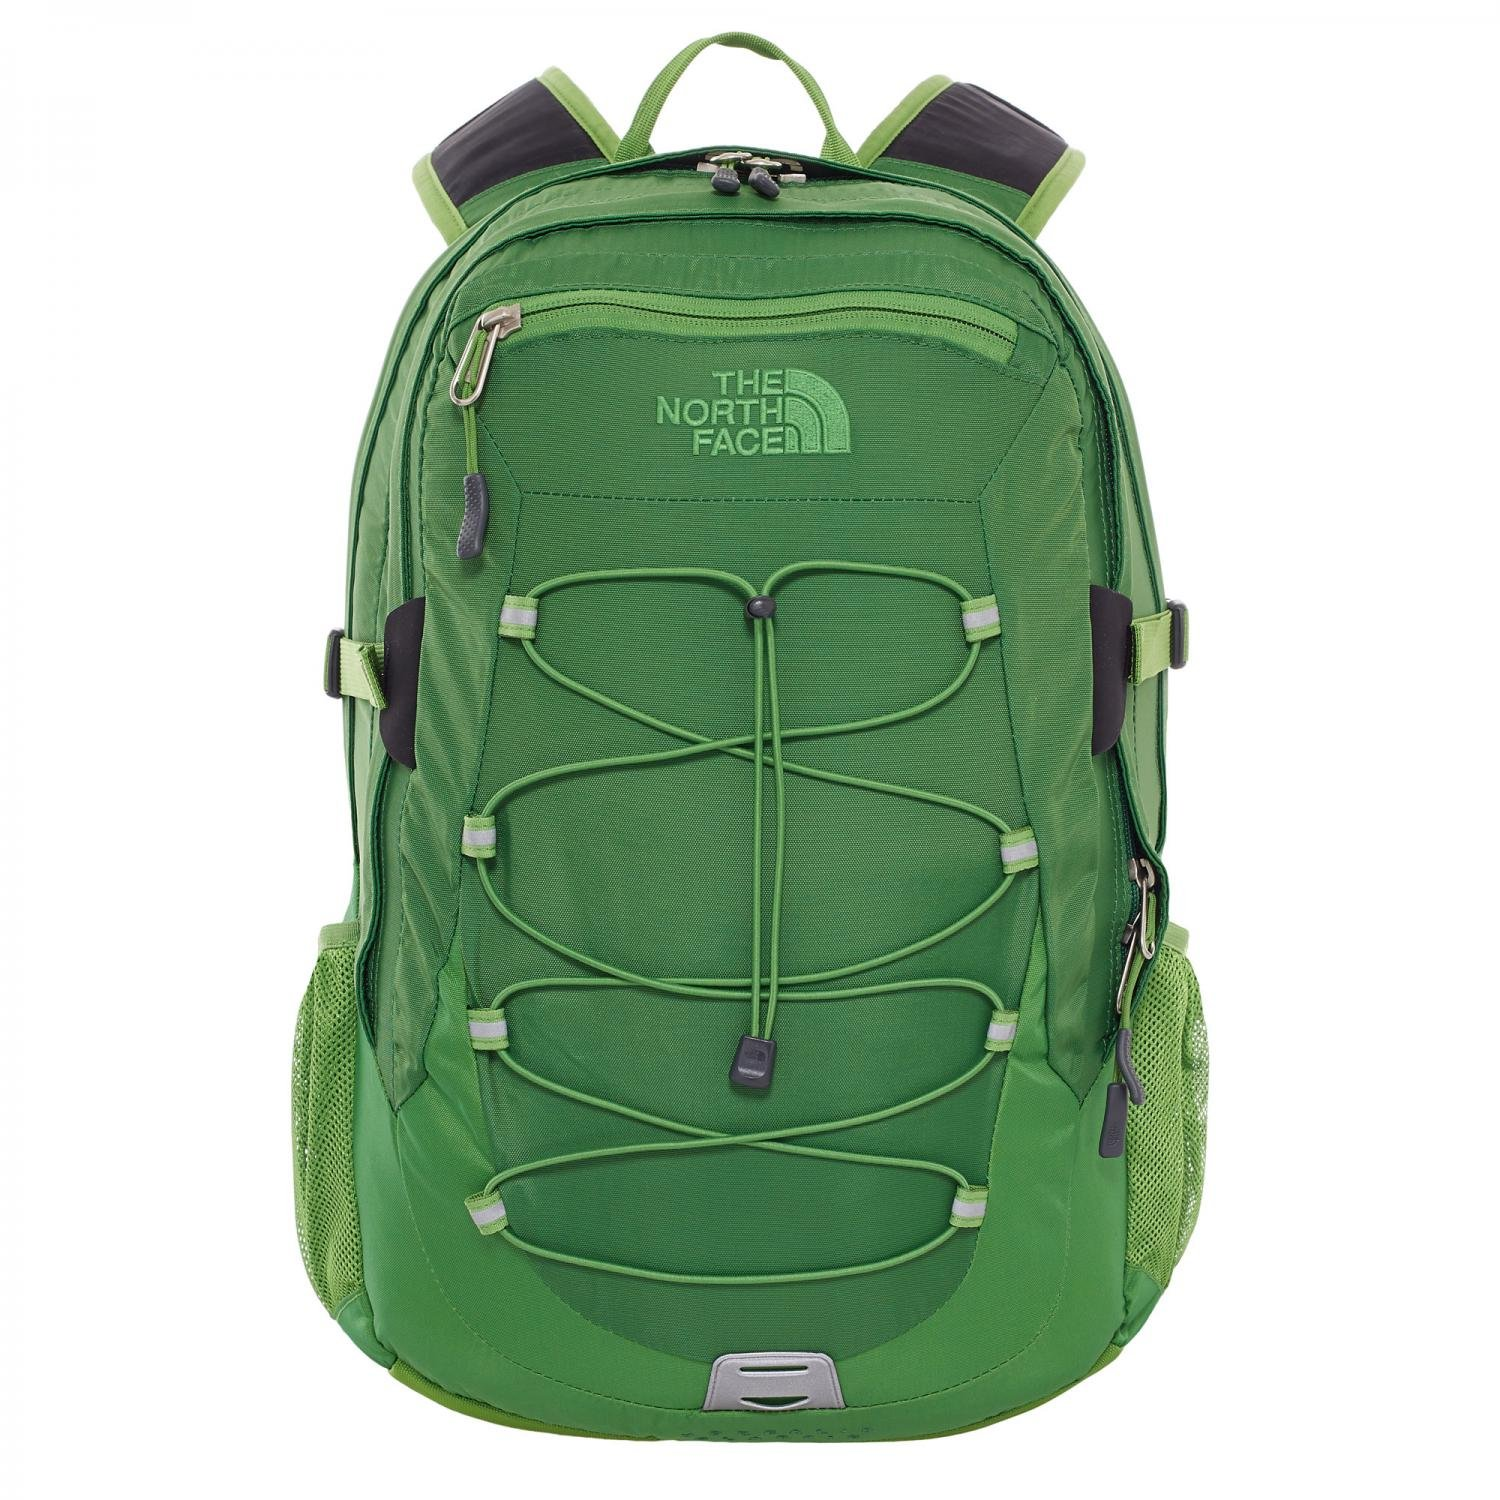 The-North-Face-zaini-sport